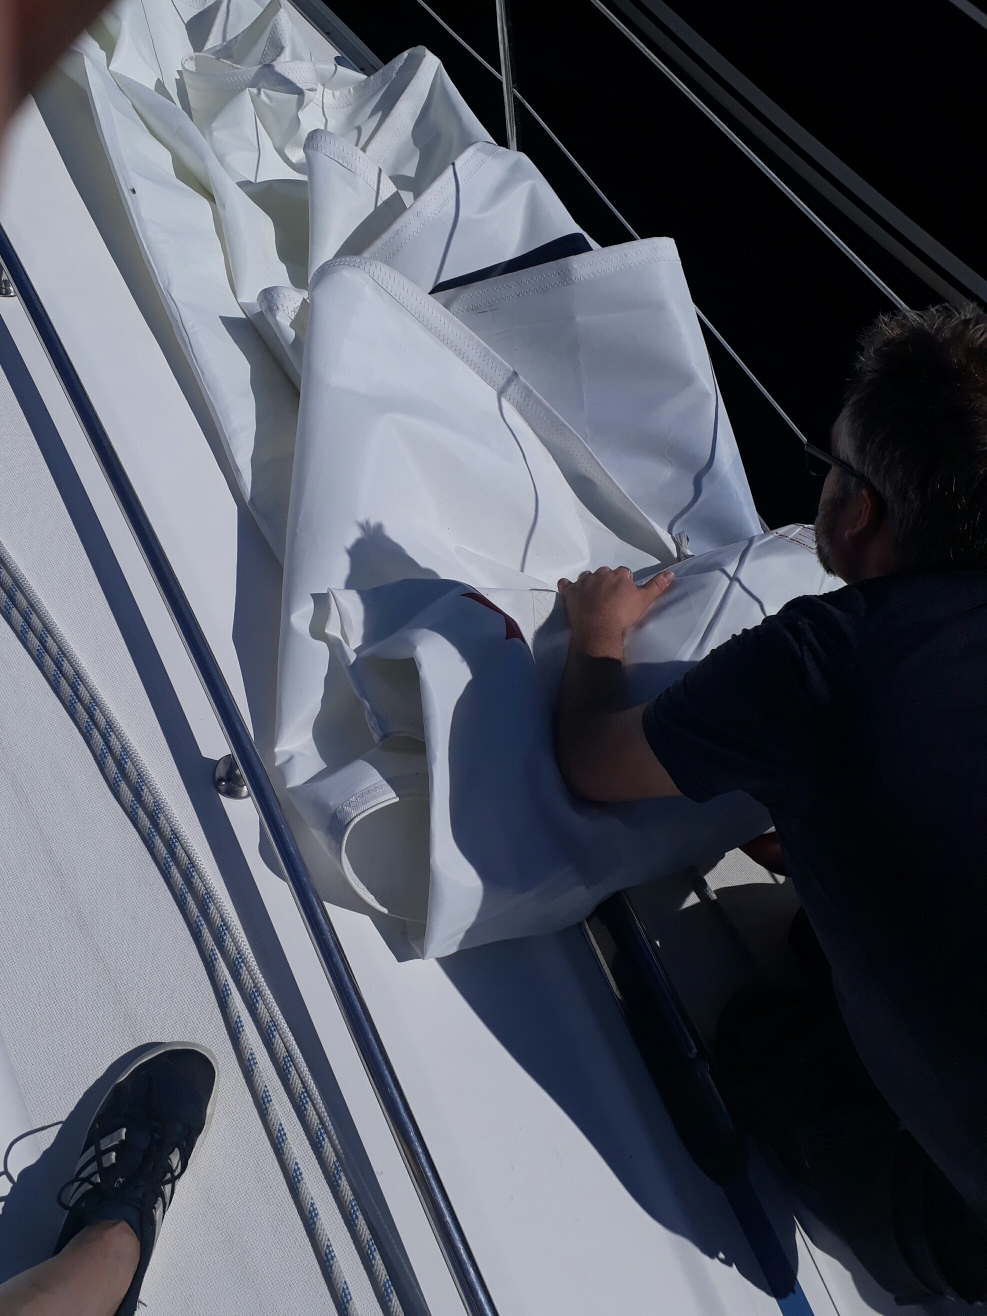 Folding up the sail for repair